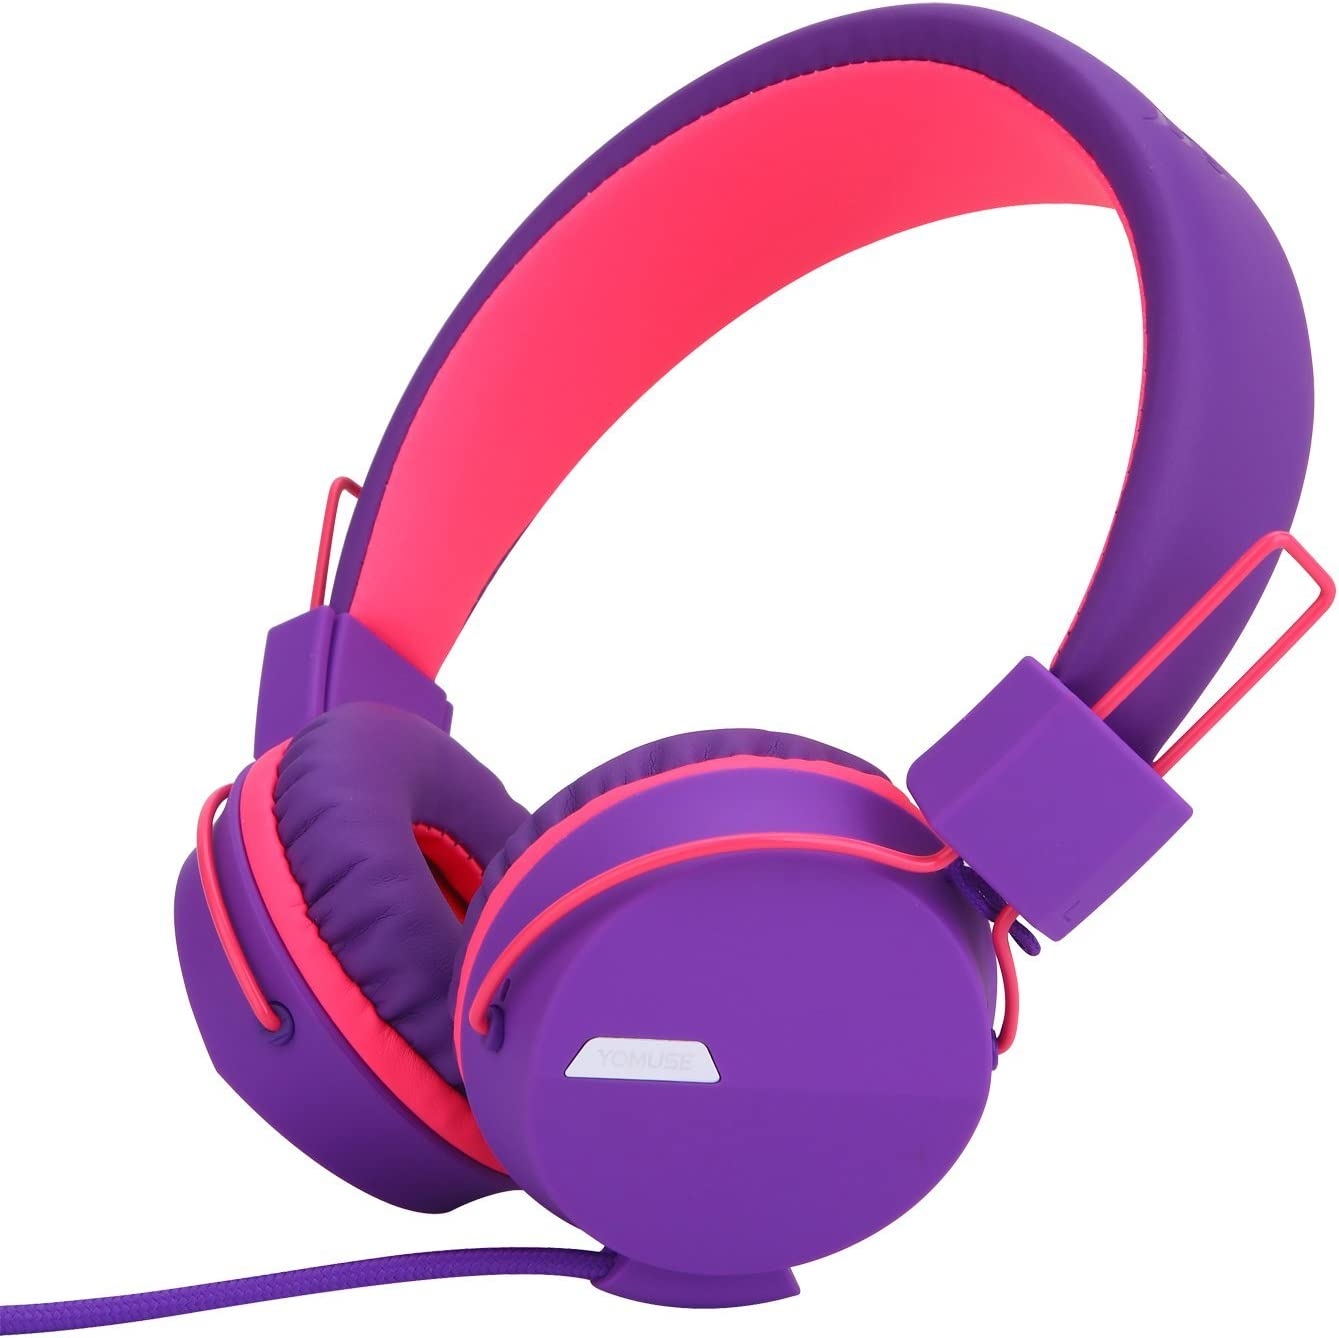 Yomuse F85 On Ear Foldable Headphones with Microphone for Kids Teens Adults, Smartphones iPhone iPod iPad Laptop Tablets Mp3/4 Purple Pink